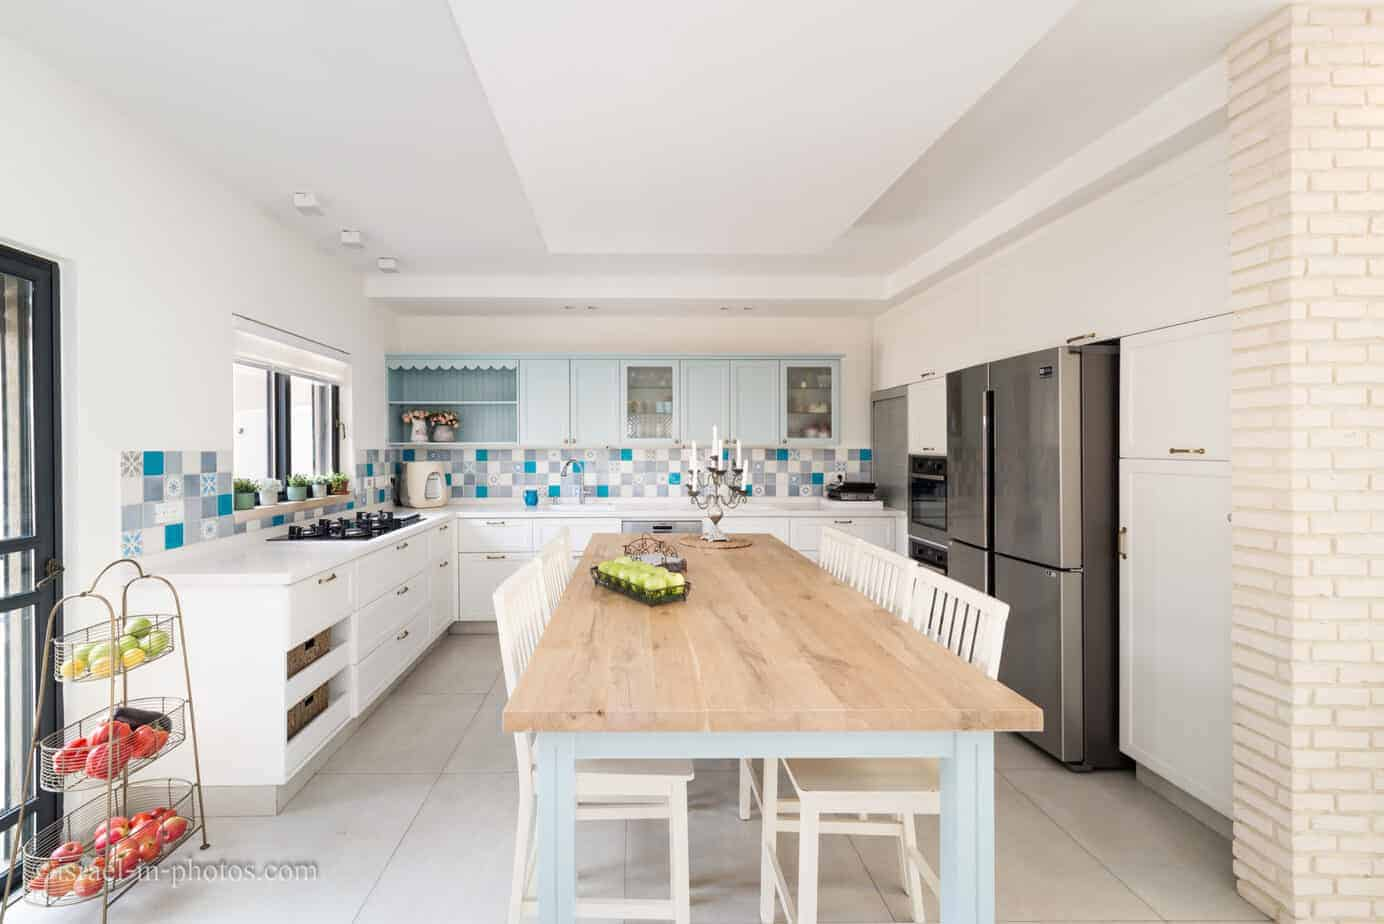 Interior design photography - With or without light.